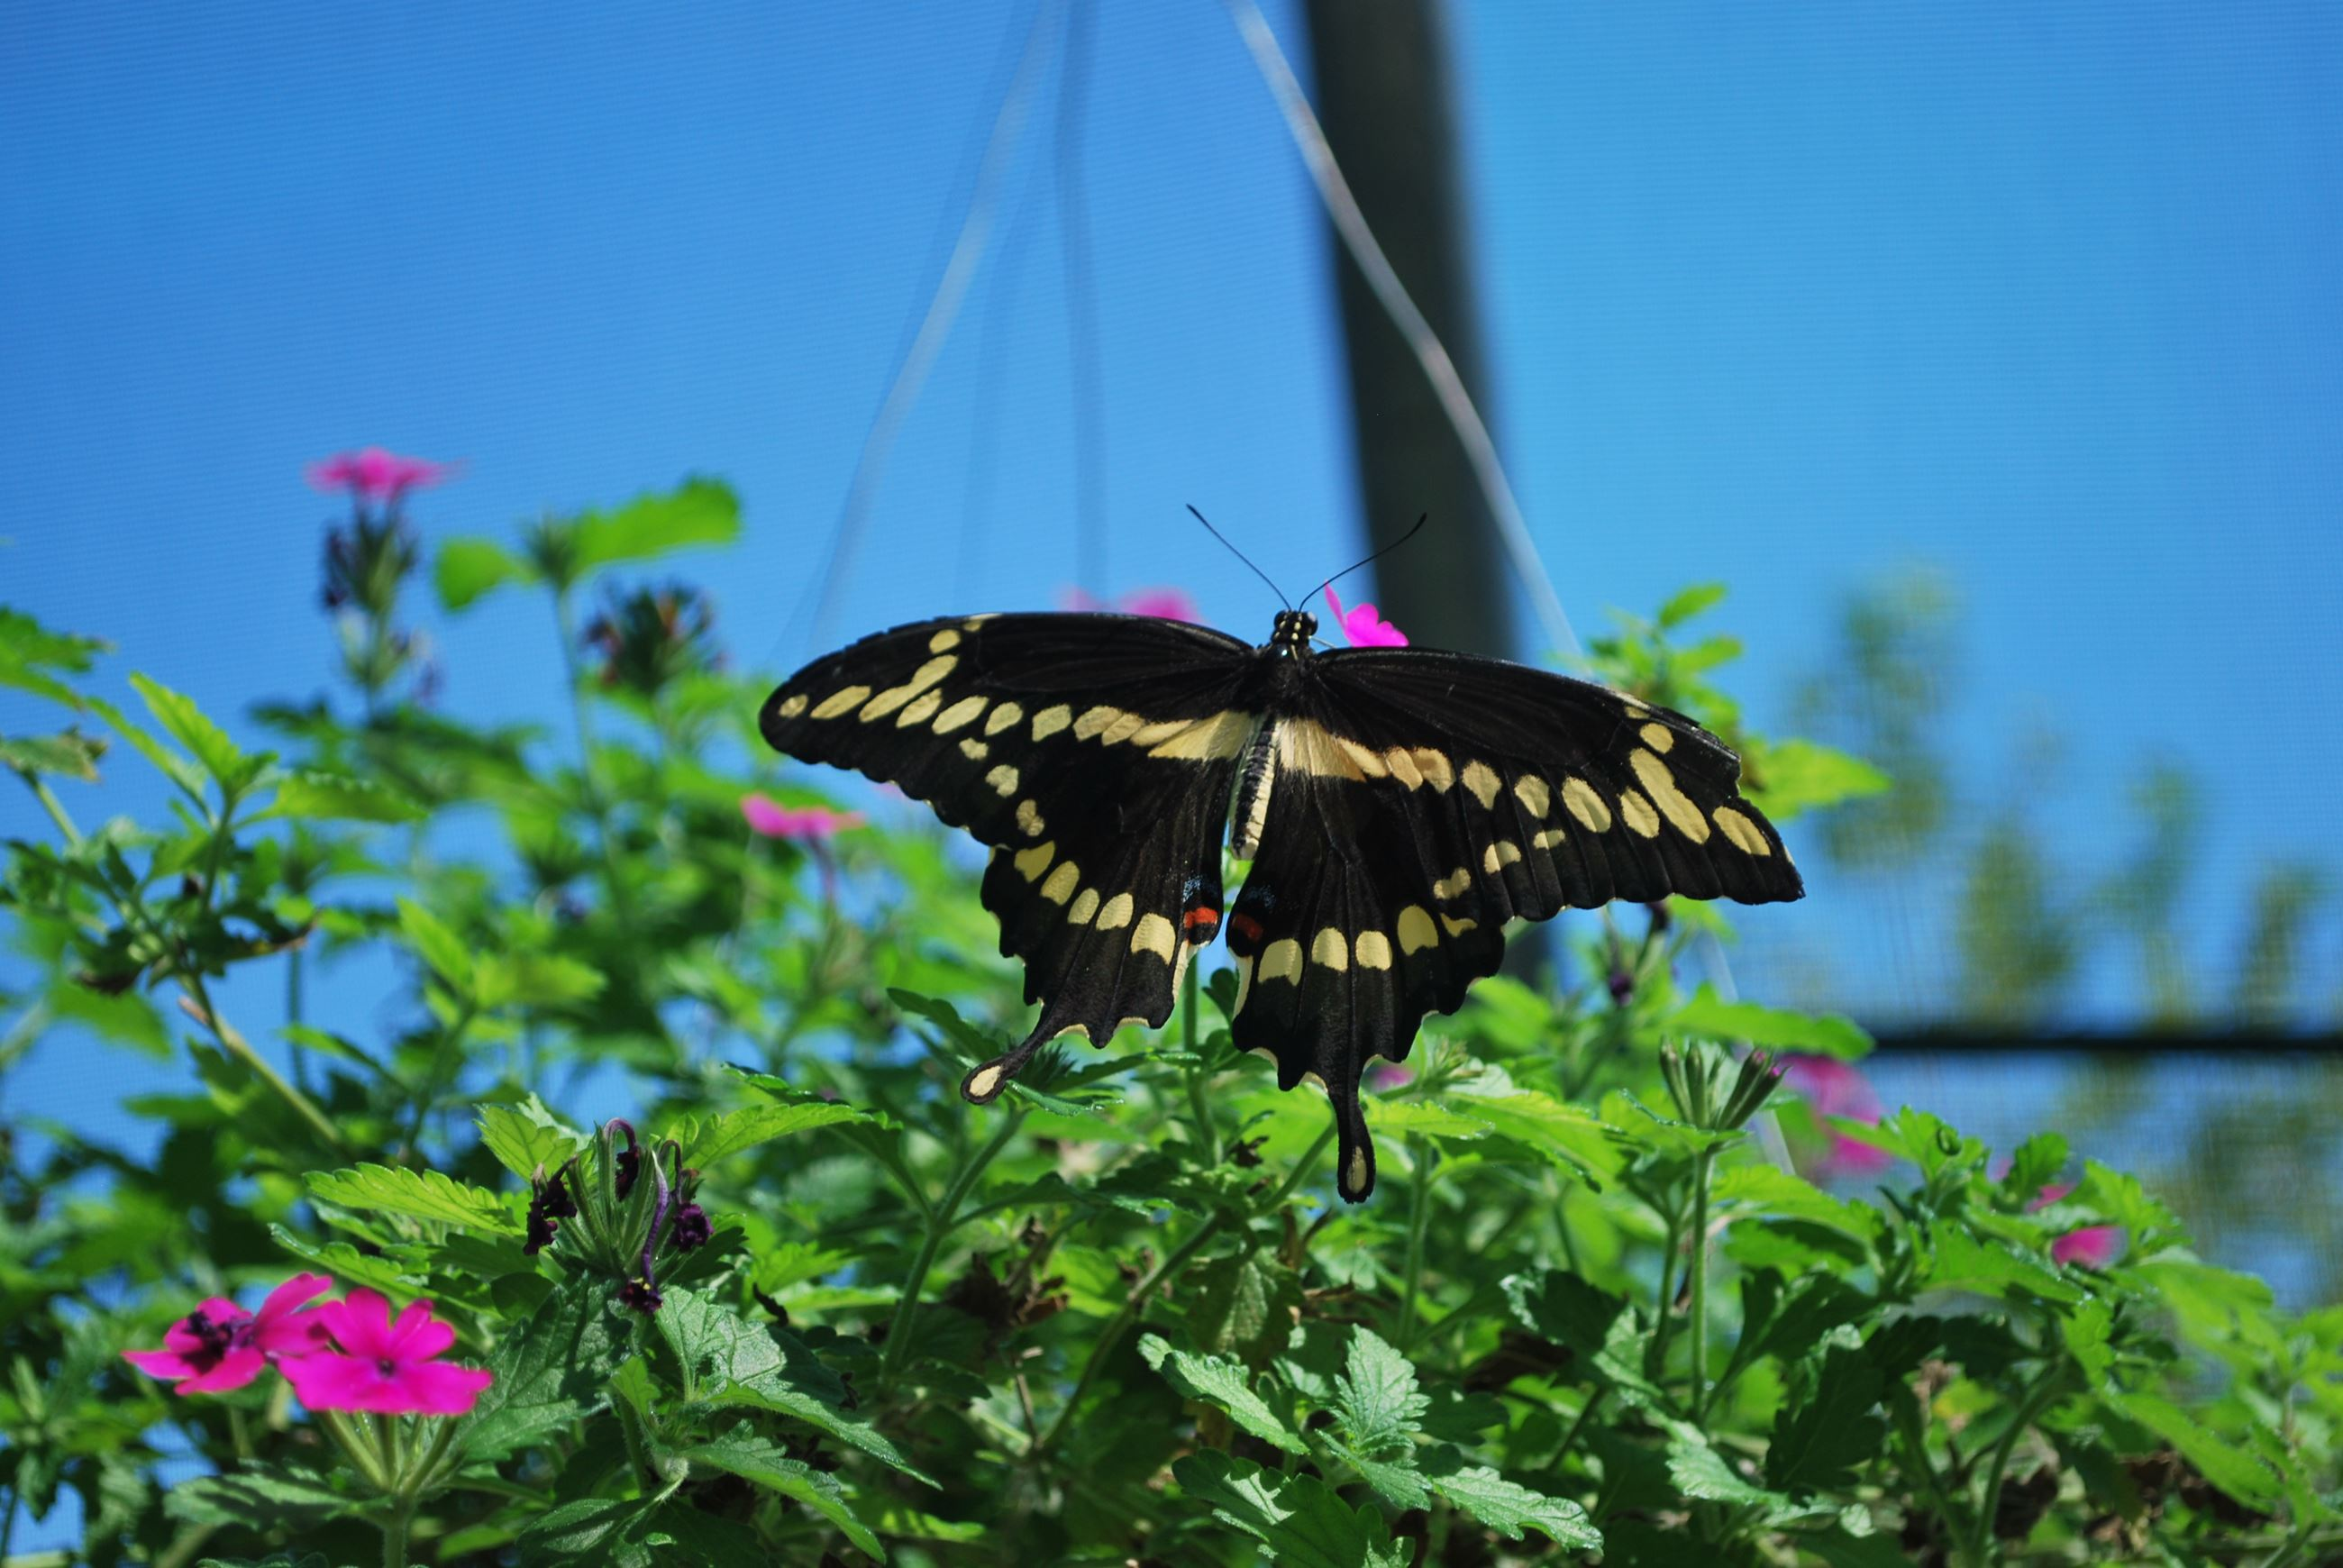 Black and Yellow Butterfly on pink flowering plant at Columbian Park Zoo, Rachel Jones